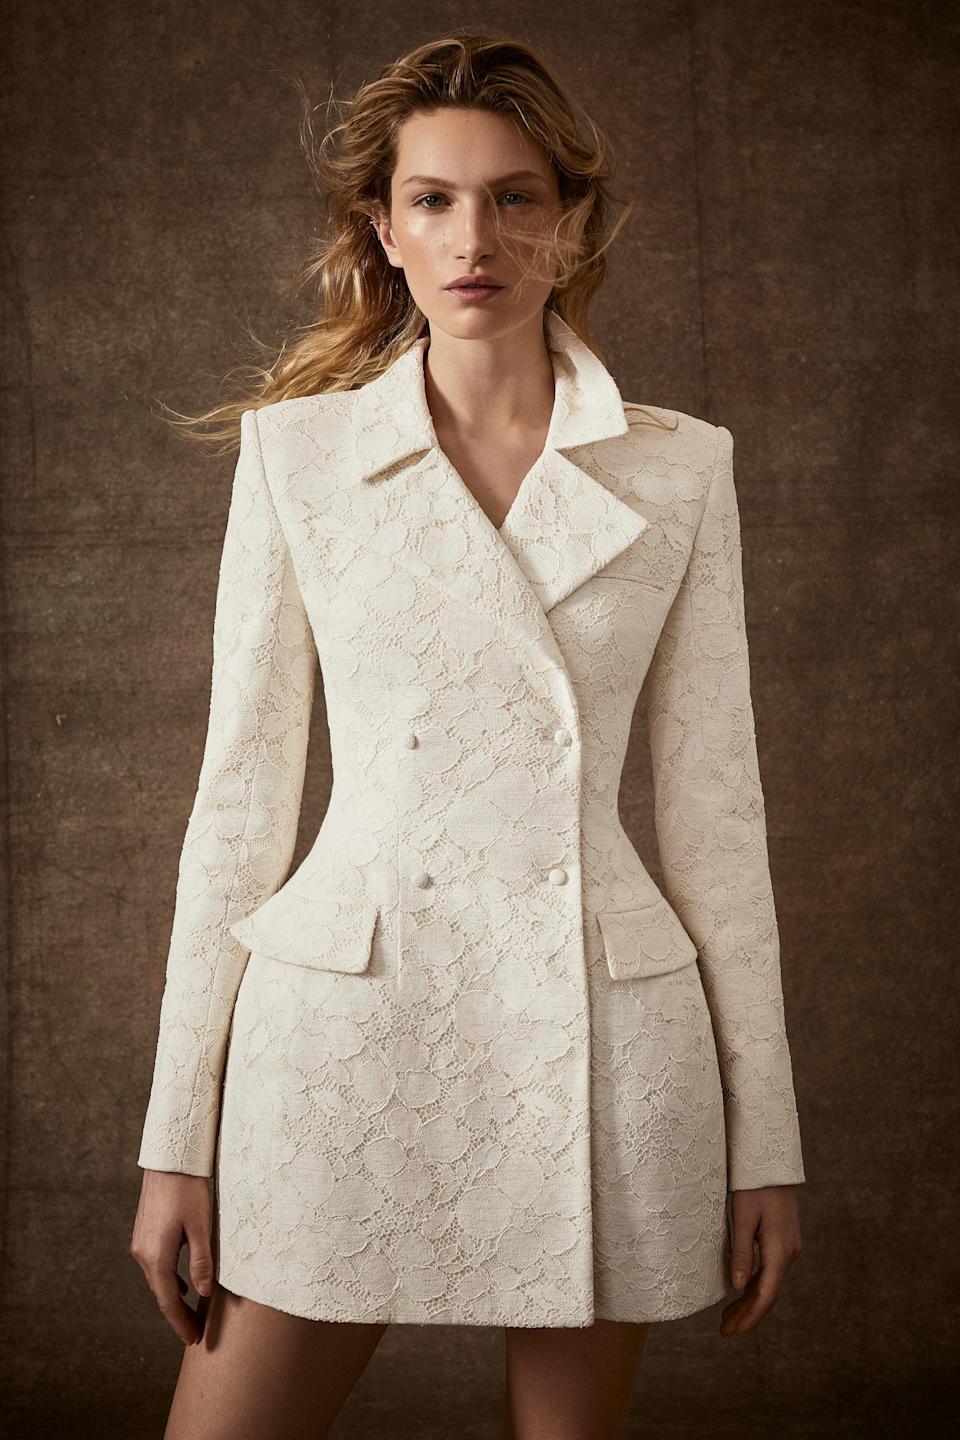 "<p class=""body-dropcap"">From rehearsal dinners to civil ceremonies, bridal suits have become a staple of the modern wedding wardrobe. They can be styled in sleek, romantic, sexy, and daring ways, making them an ideal option for events like the rehearsal dinner, after-party, brunch, and beyond. With smaller weddings taking the place of larger celebration in a mid-pandemic world, brides have been tapping suits of all styles to elevate the look of their intimate dinners and vow exchanges, saving their gowns for larger events next year, or anniversary affairs in the future. Some brides take an even more daring approach: donning suits with veils for a walk down the aisle, even in front of a larger guest count. Here, all the expertly-tailored, wedding-worthy suits you can shop now—from modern sets to sweet suiting. </p>"